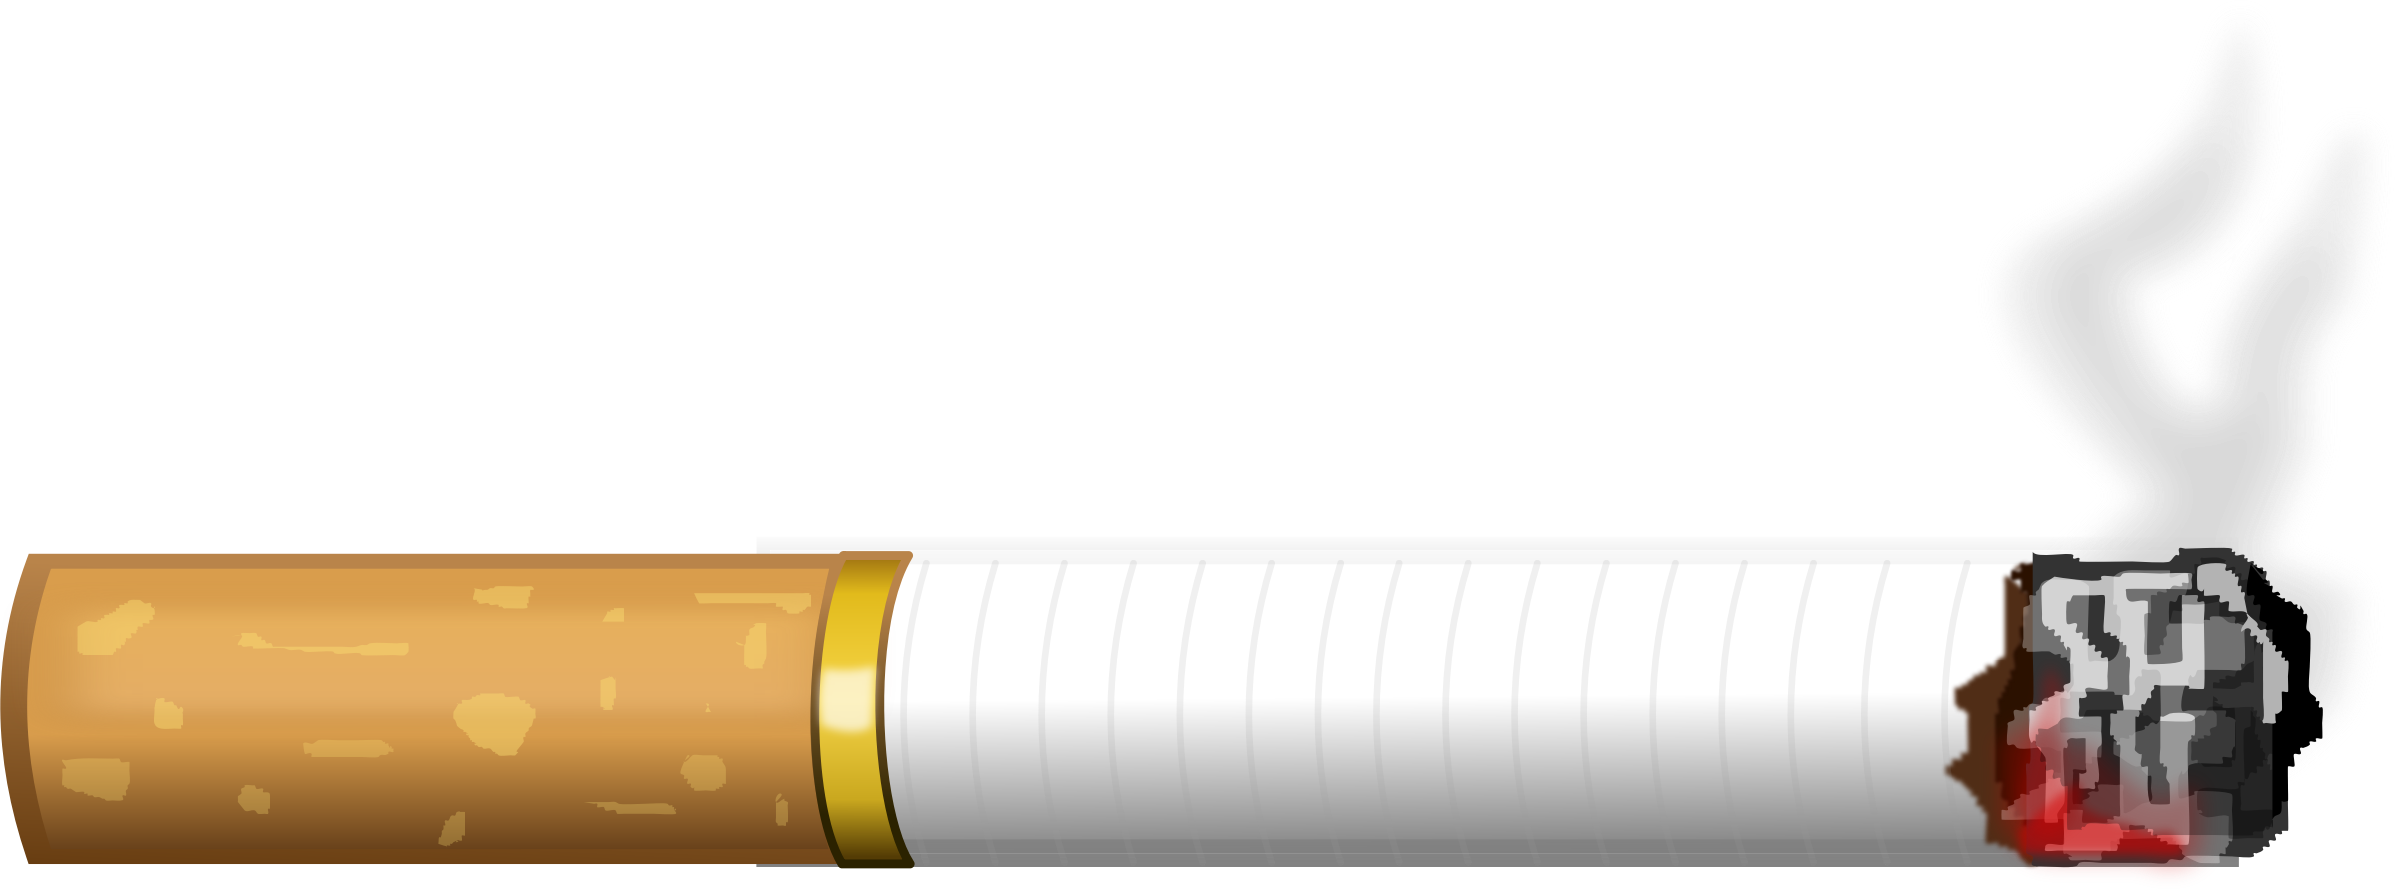 Burning cigarette png. Icons free and downloads